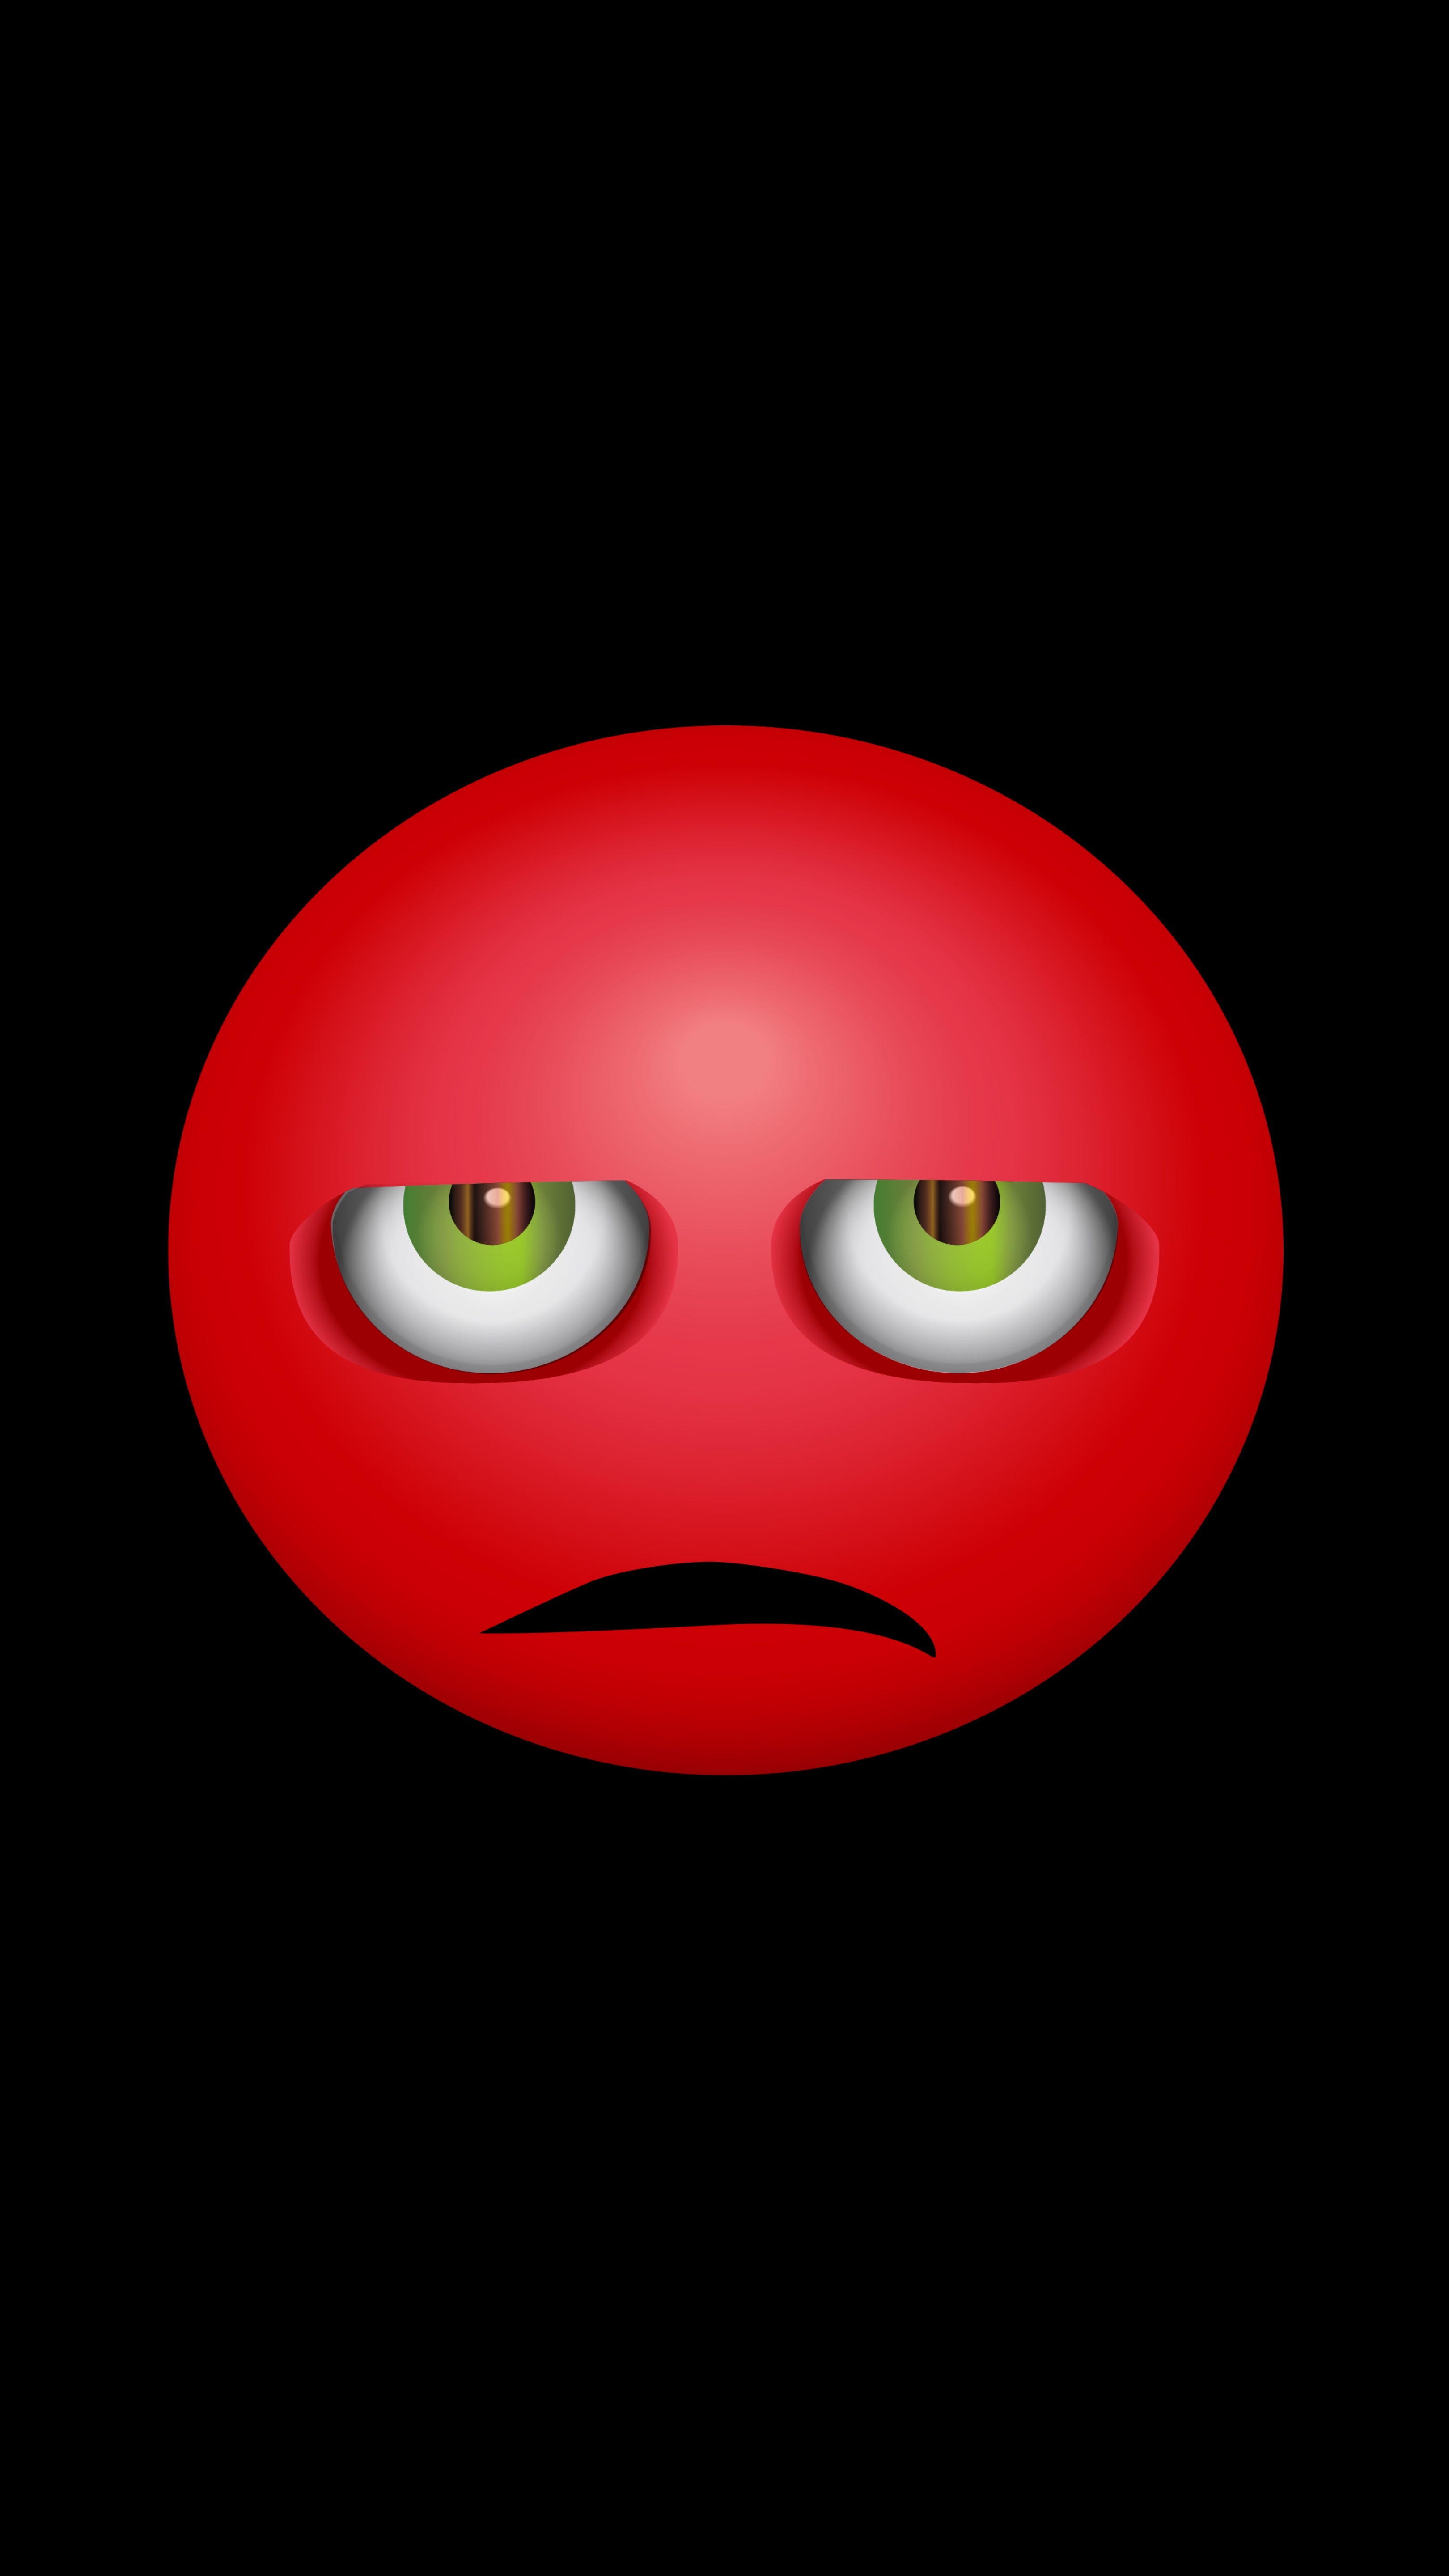 92179 Screensavers and Wallpapers Emoticon for phone. Download Vector, Emoticon, Smiley, Anger, Evil, Dissatisfaction, Discontent pictures for free